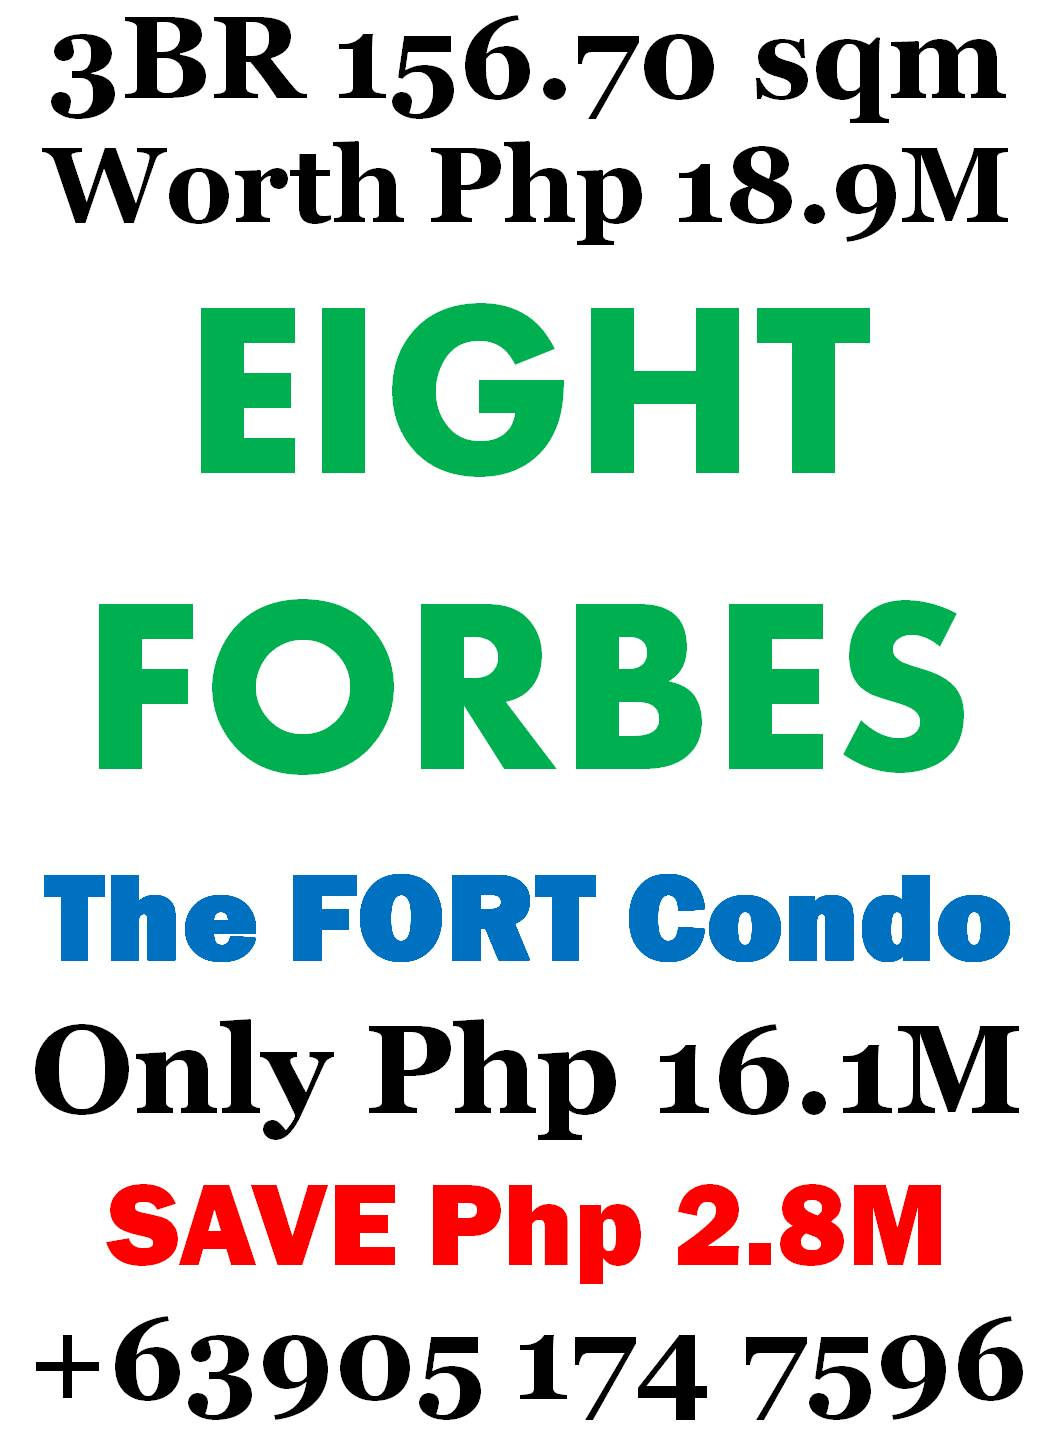 3 Bedroom The Fort Condo beside Manila Golf Save Php 2.8M